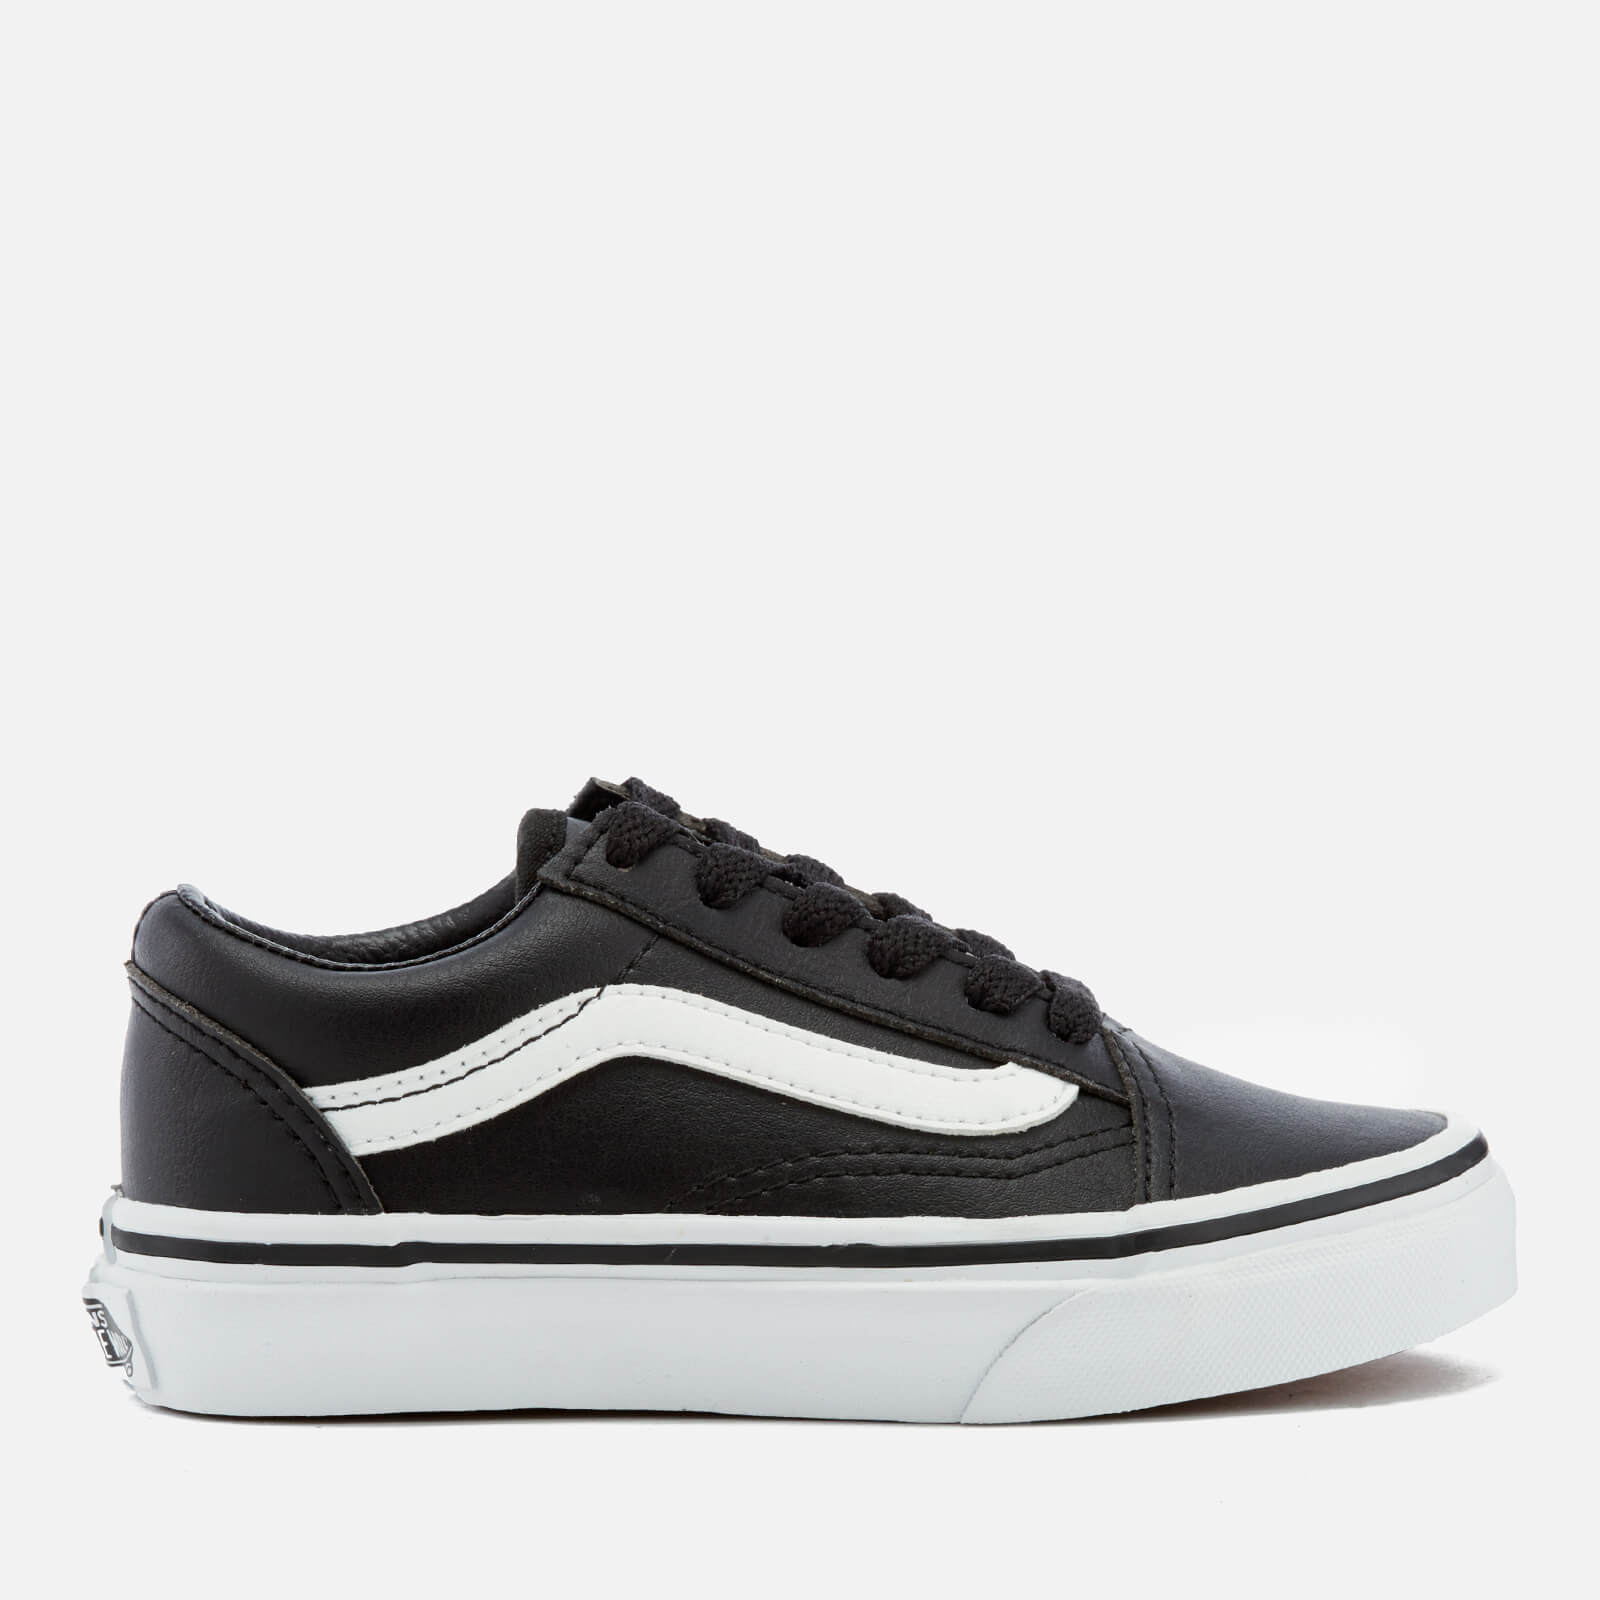 9301b056 Vans Kids' Old Skool Classic Tumble Trainers - Black/True White